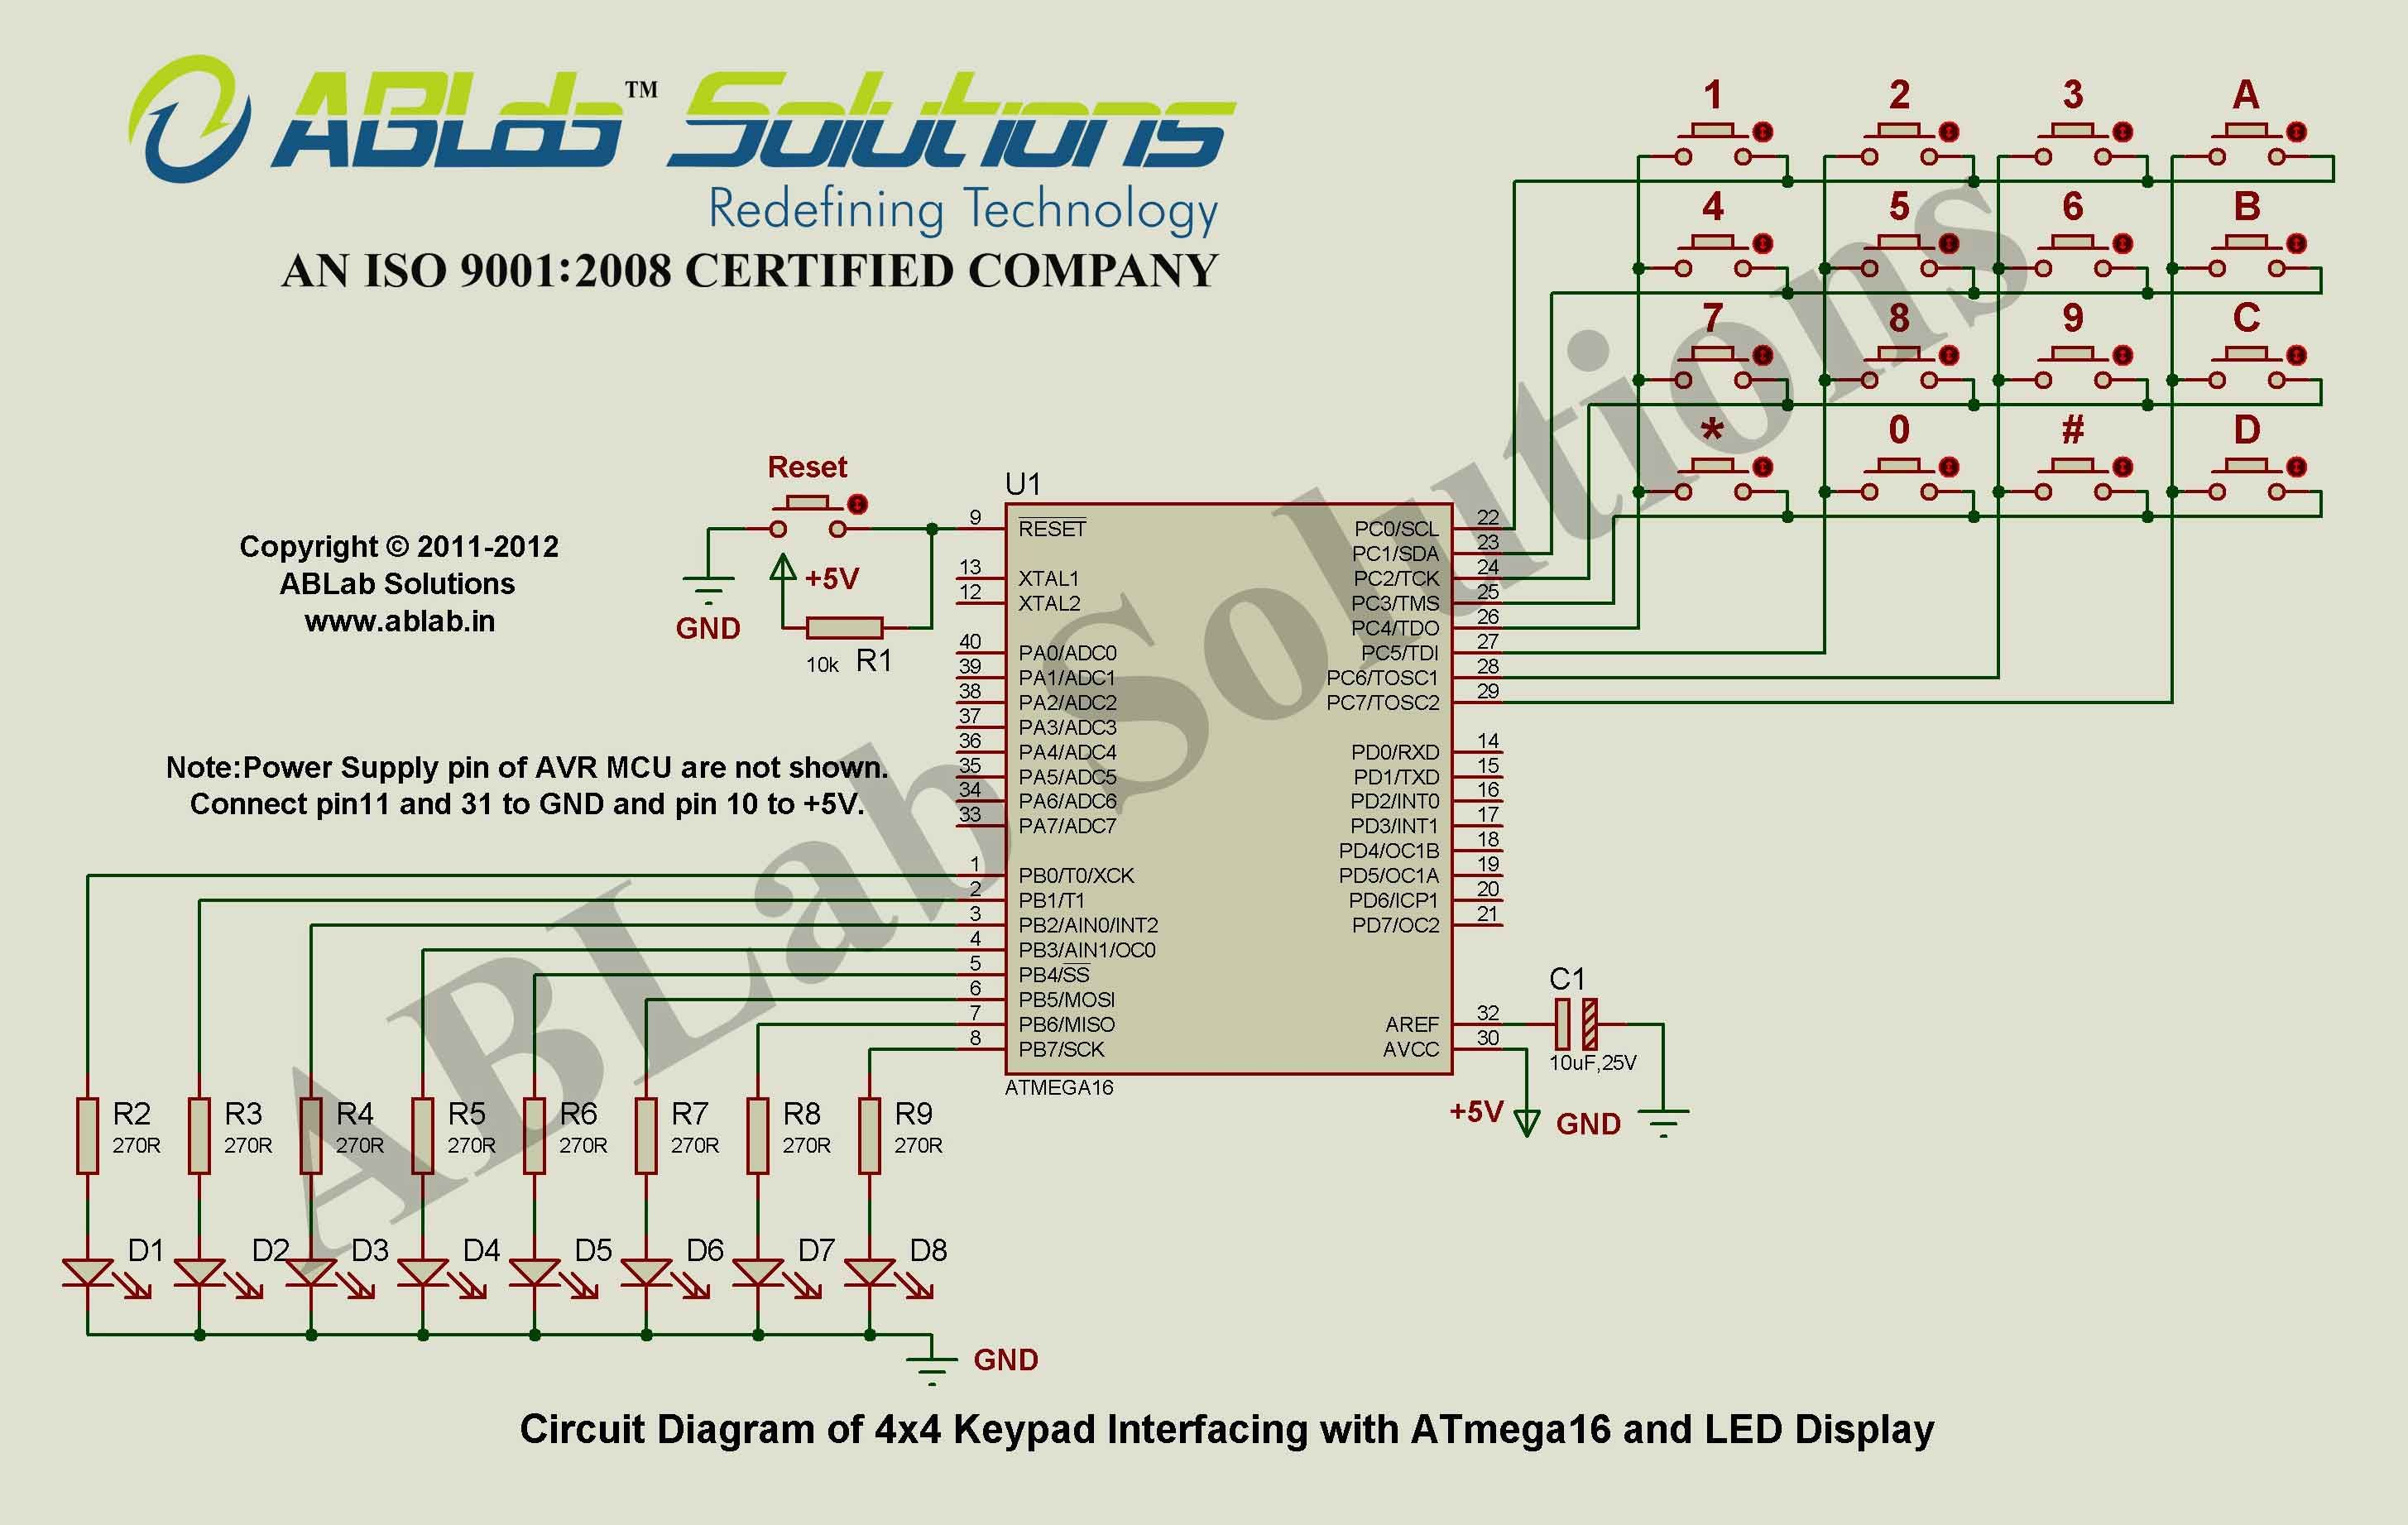 small resolution of 4x4 keypad interfacing with avr atmega16 microcontroller and led display circuit diagram ablab solutions